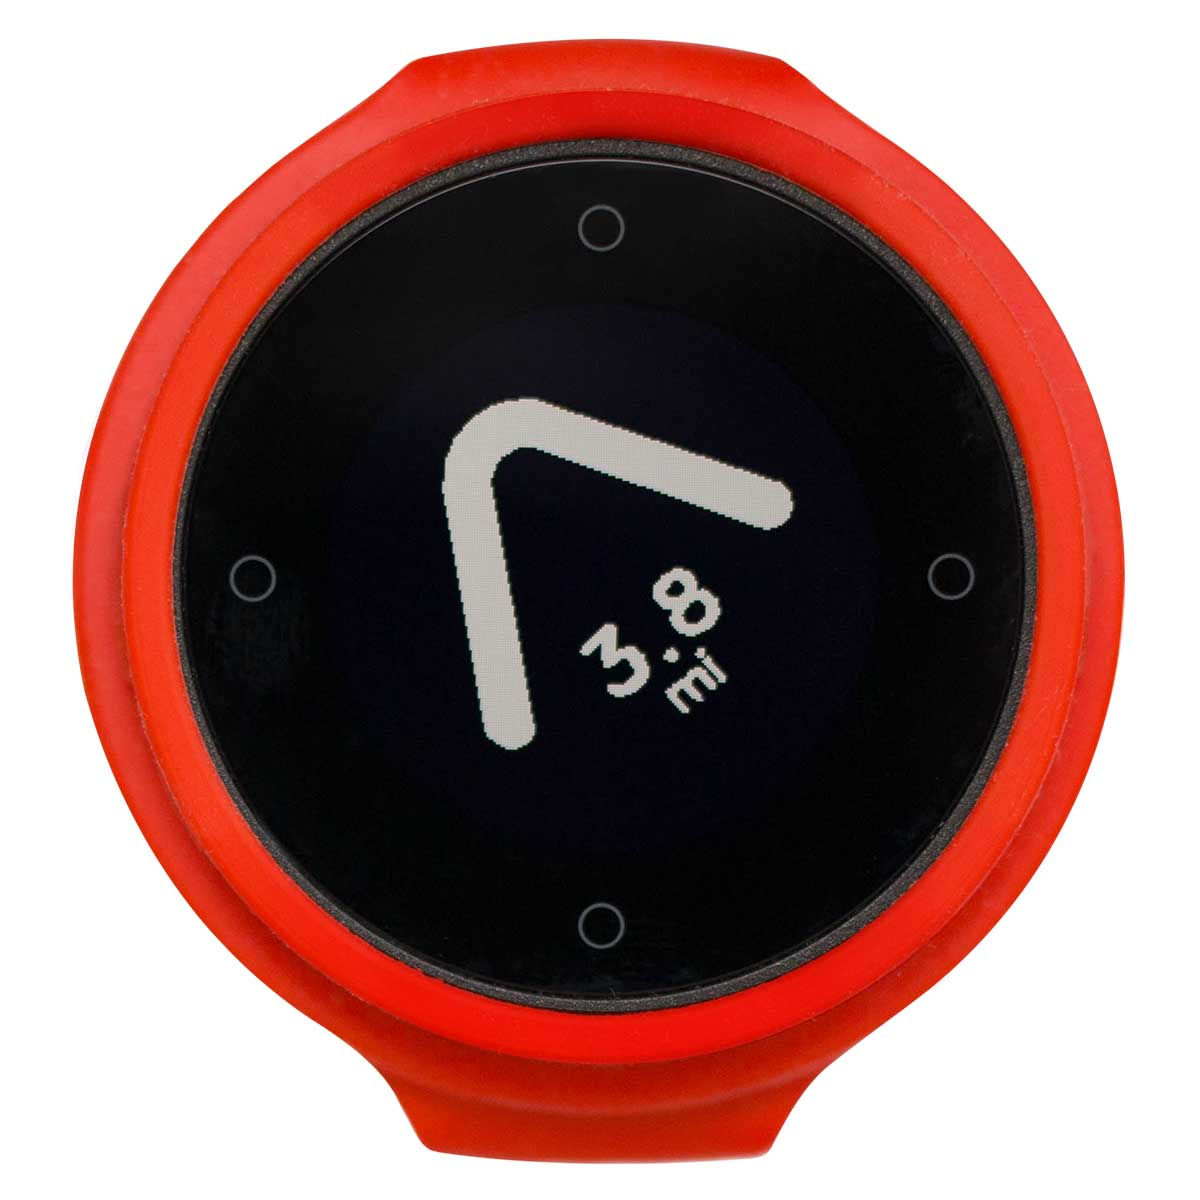 Beeline Smart Navigation Compass With Ride Tracking | Cykelcomputere